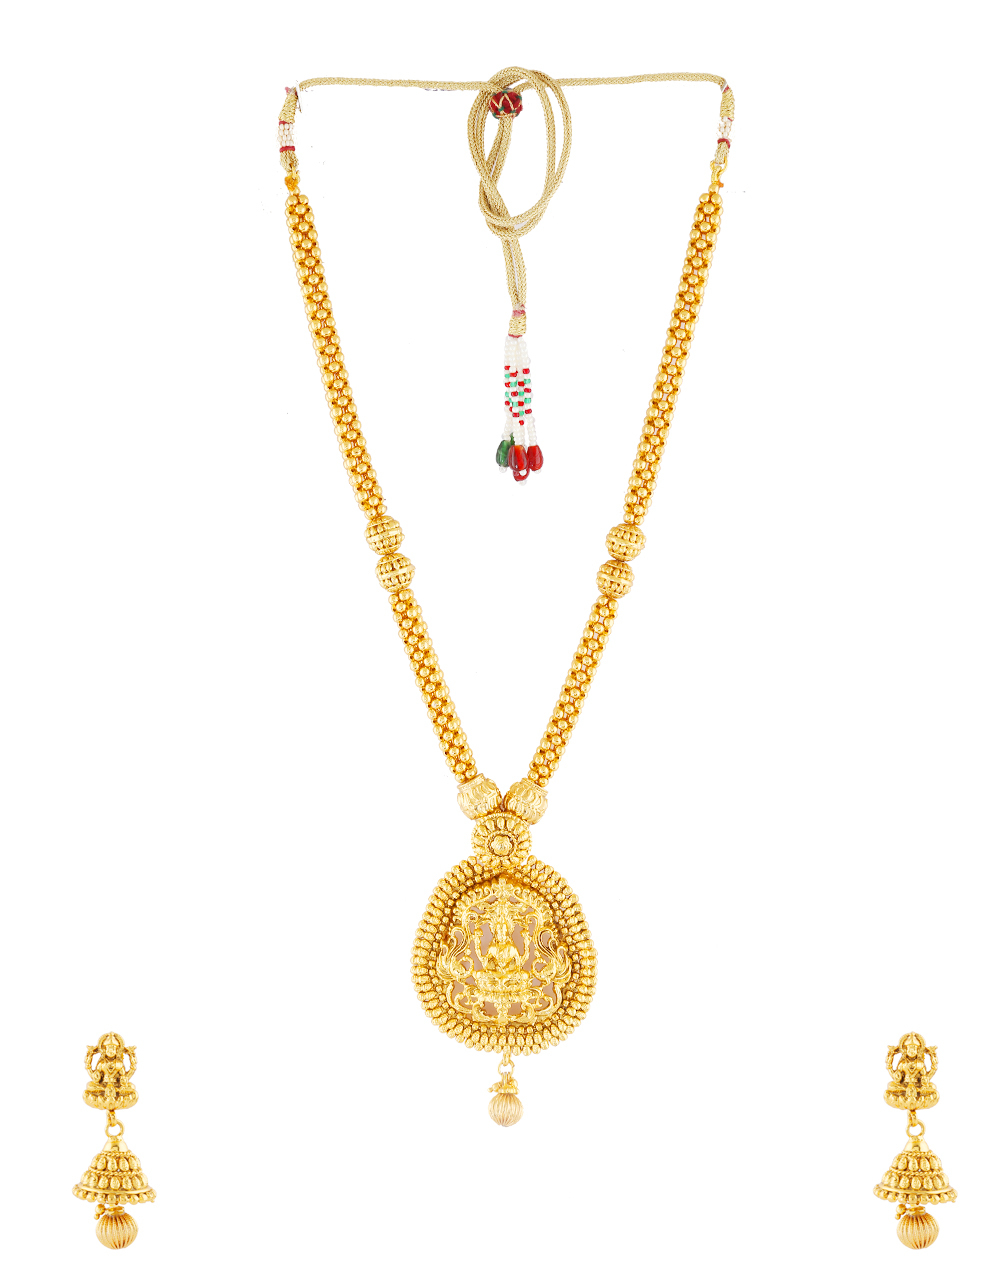 Temple Design Gold Finish Traditional South Indian Necklace